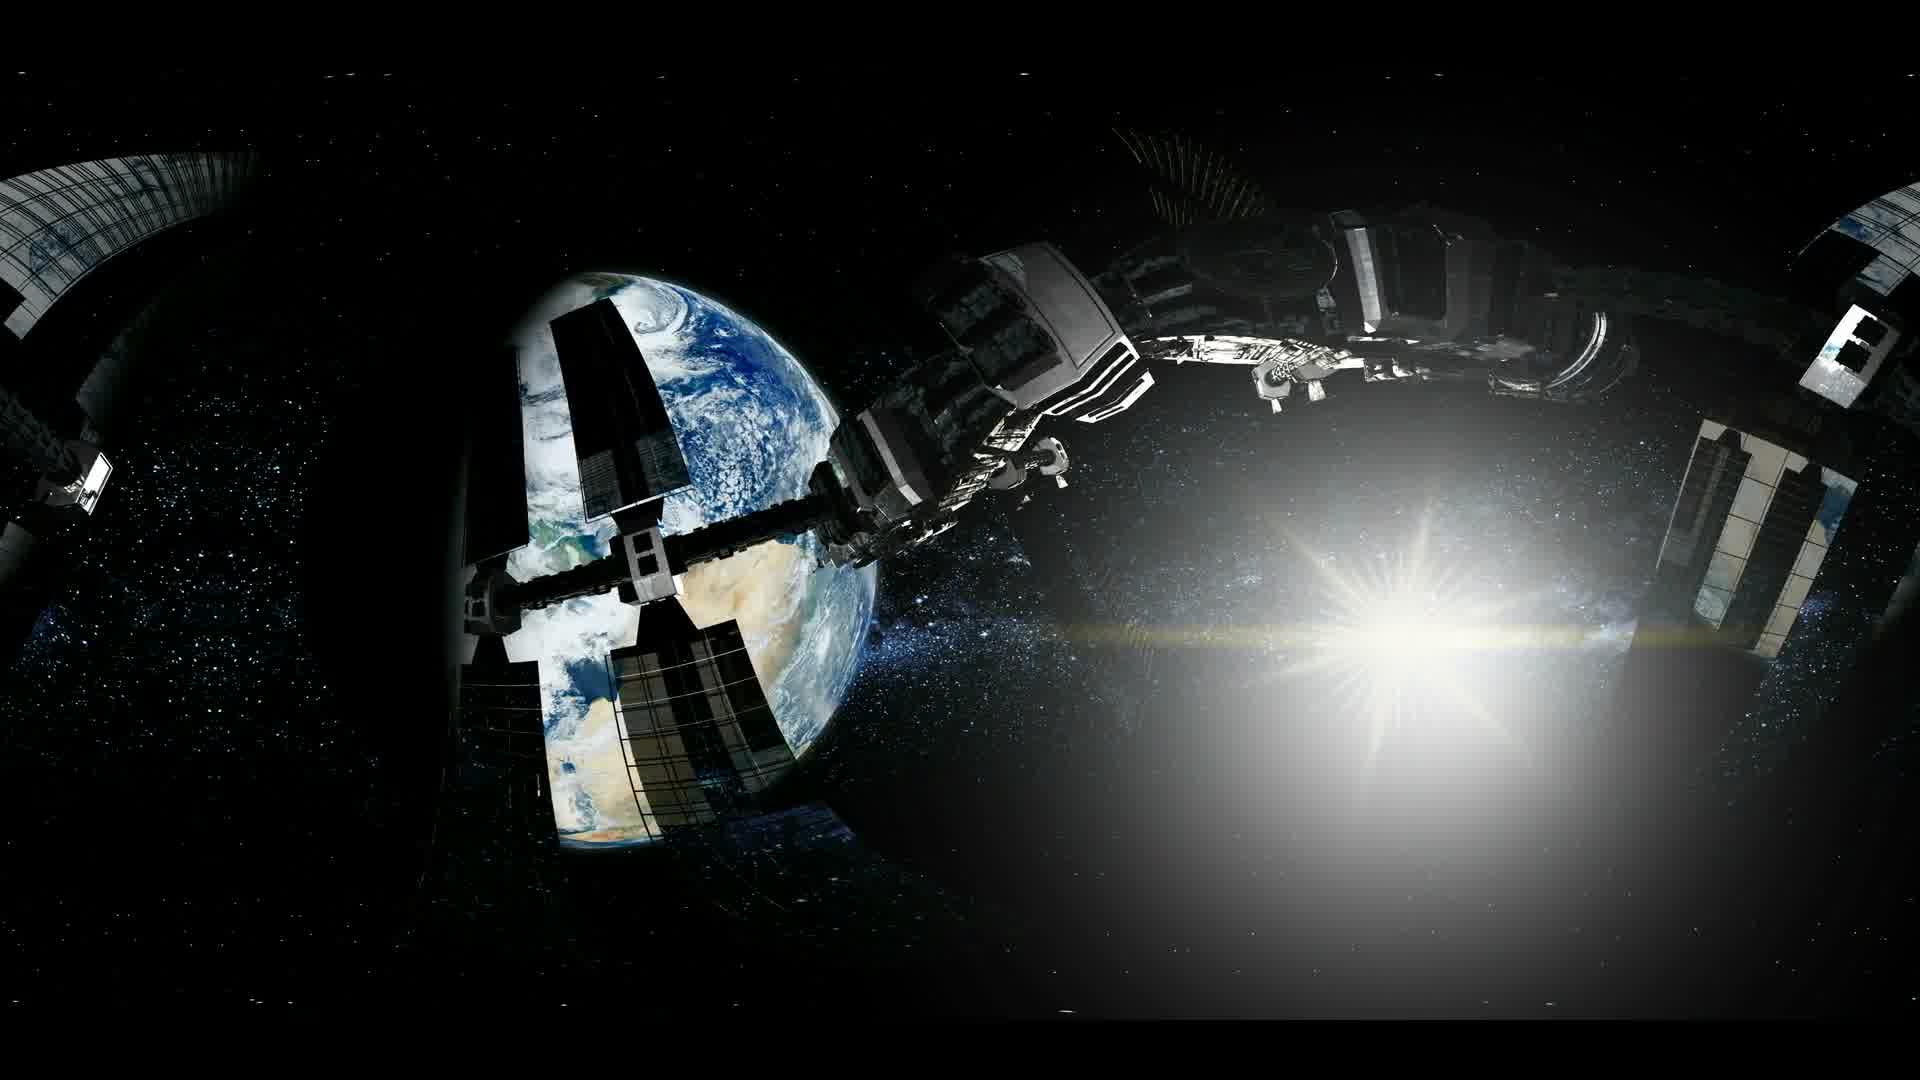 ISS in virtual reality 360 degree video. International Space Station Orbiting Earth. Elements of this image furnished by NASA